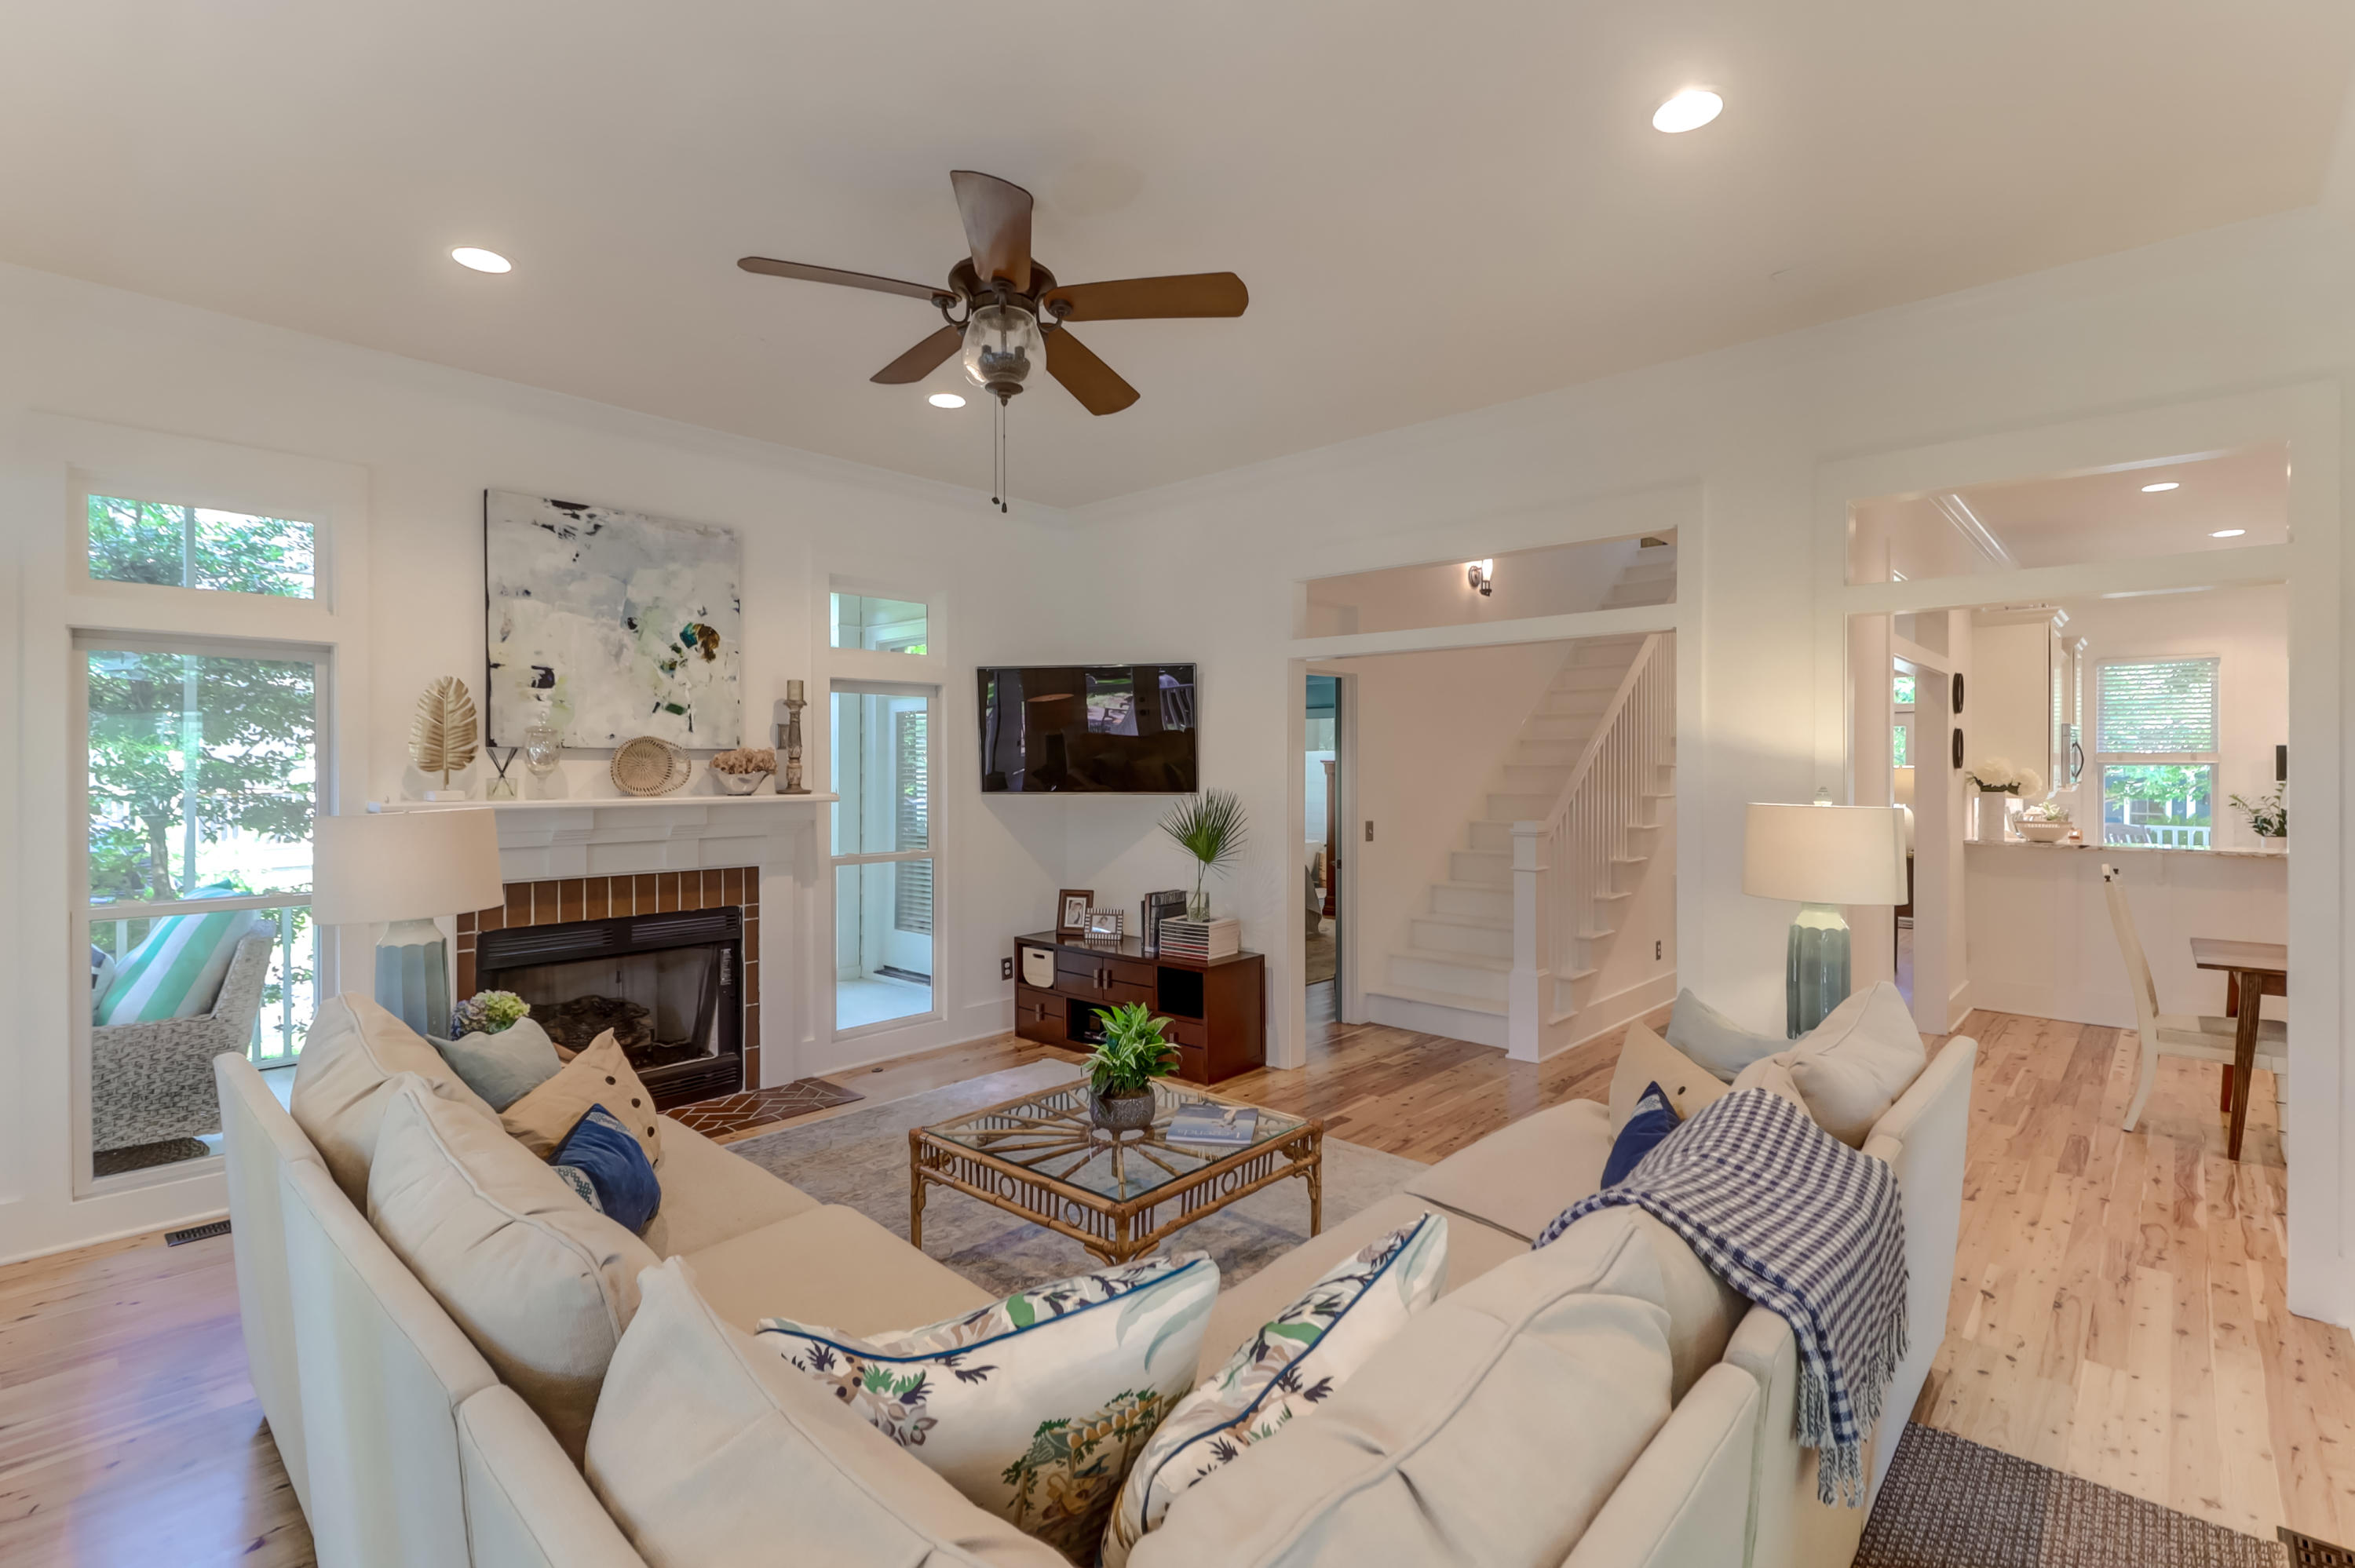 The Villages In St Johns Woods Homes For Sale - 5056 Coral Reef Dr, Johns Island, SC - 14